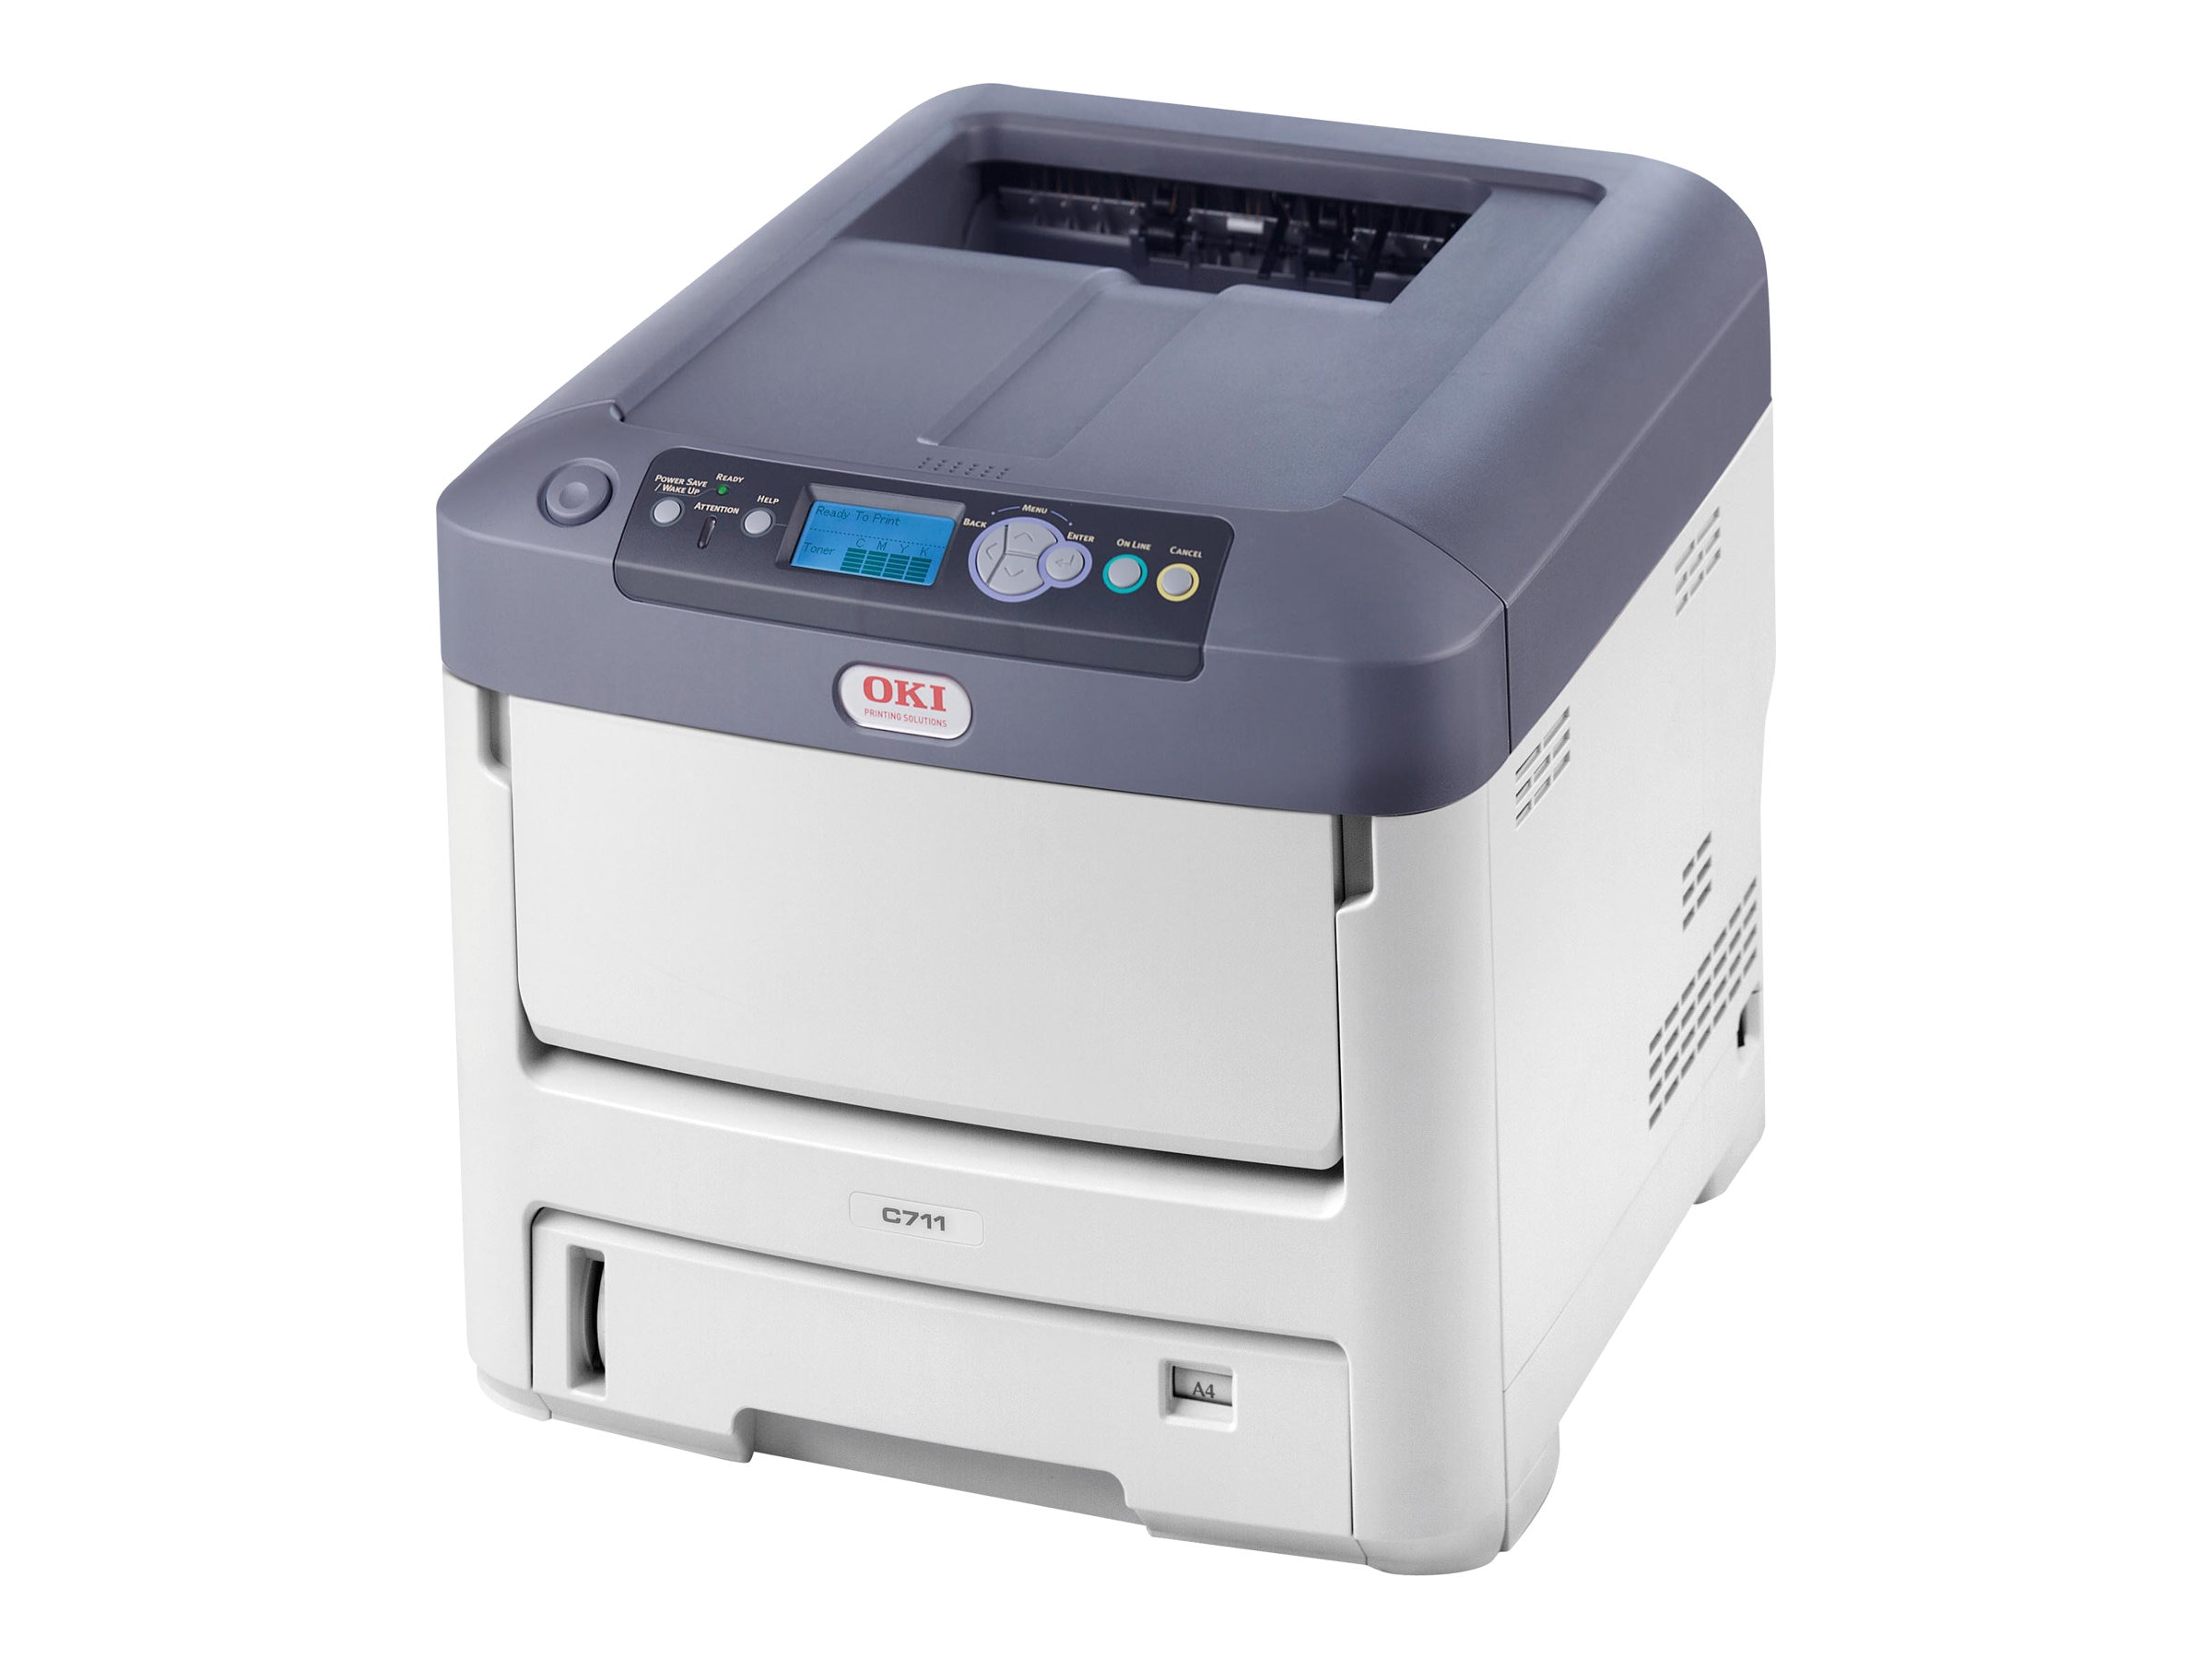 Oki C711dn Digital Color Printer (Multilingual), 62446803, 25487361, Printers - Laser & LED (color)